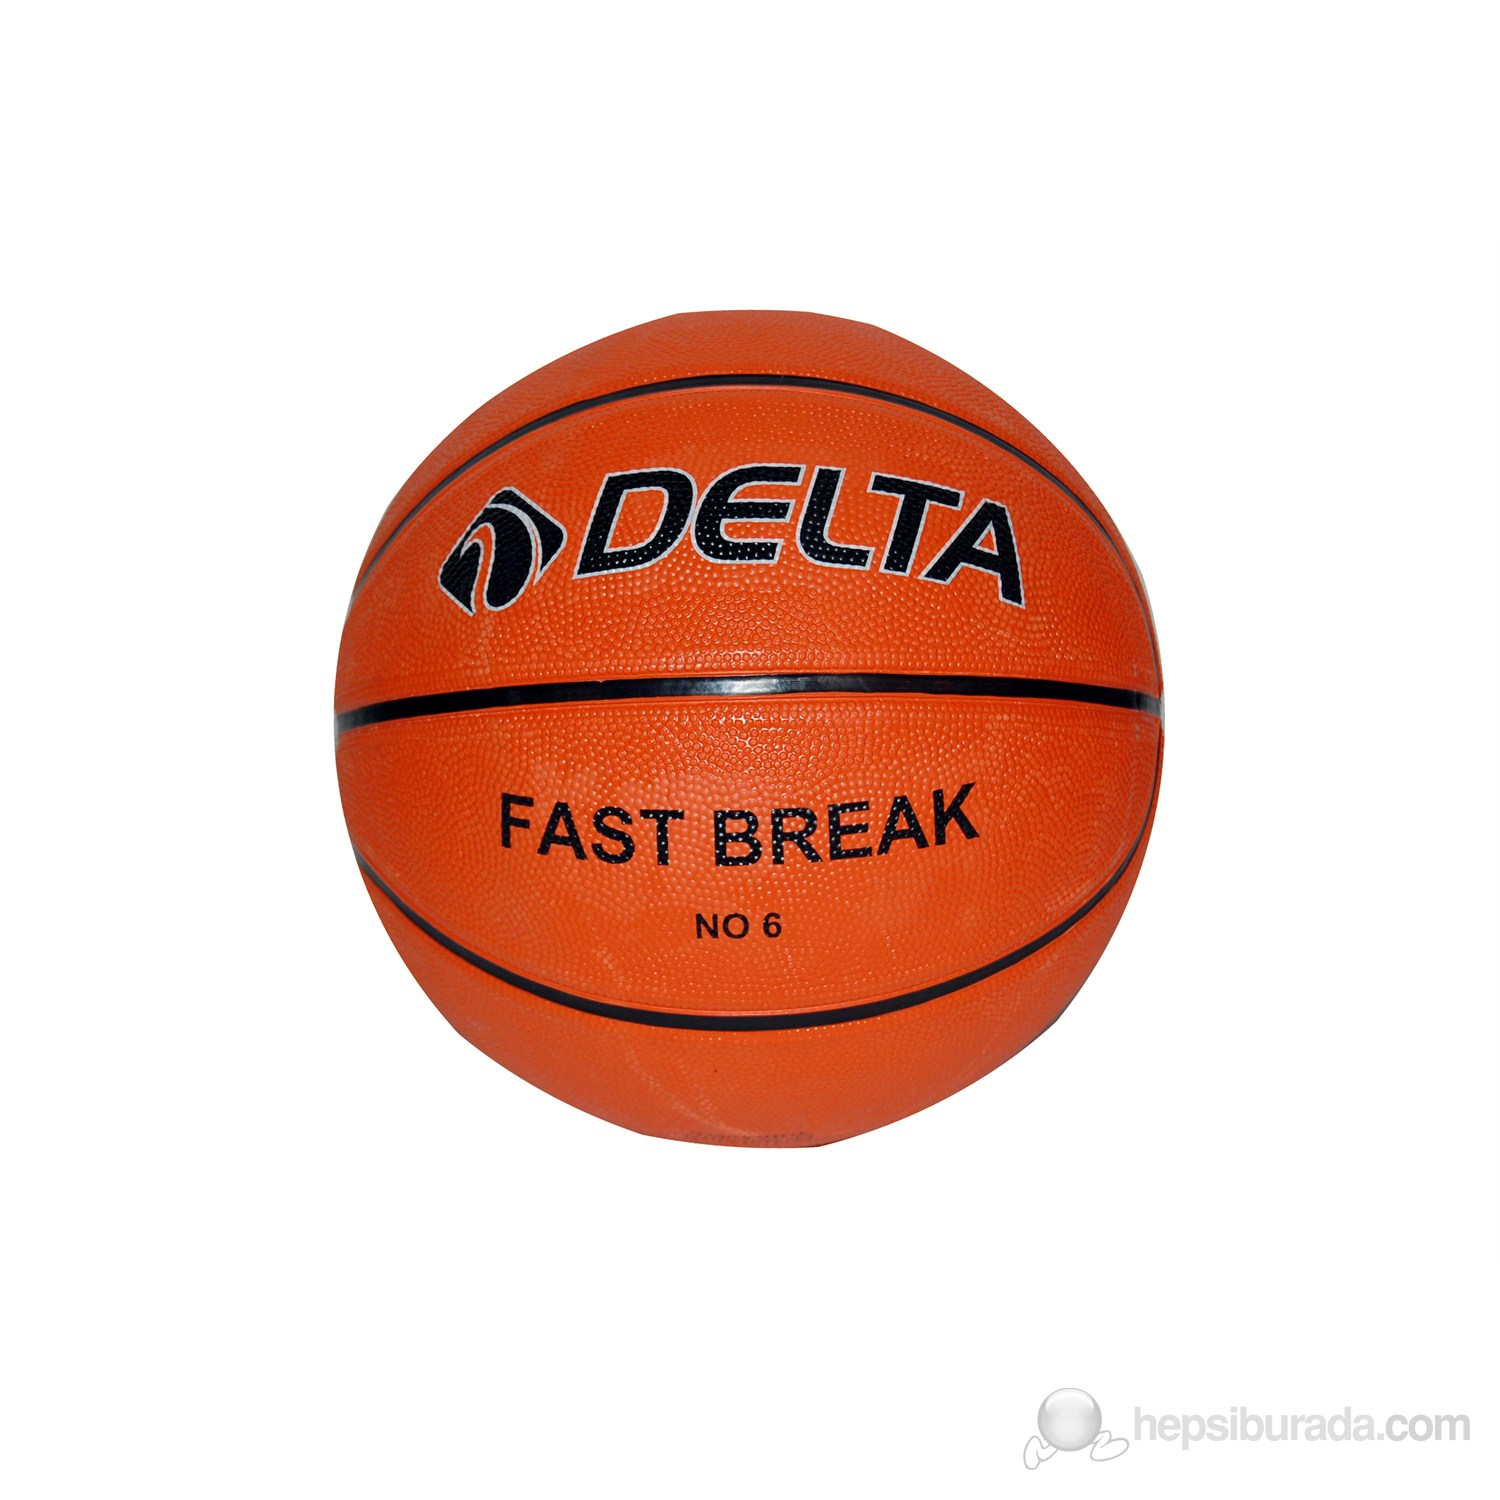 Delta Fast Break Basketbol Topu